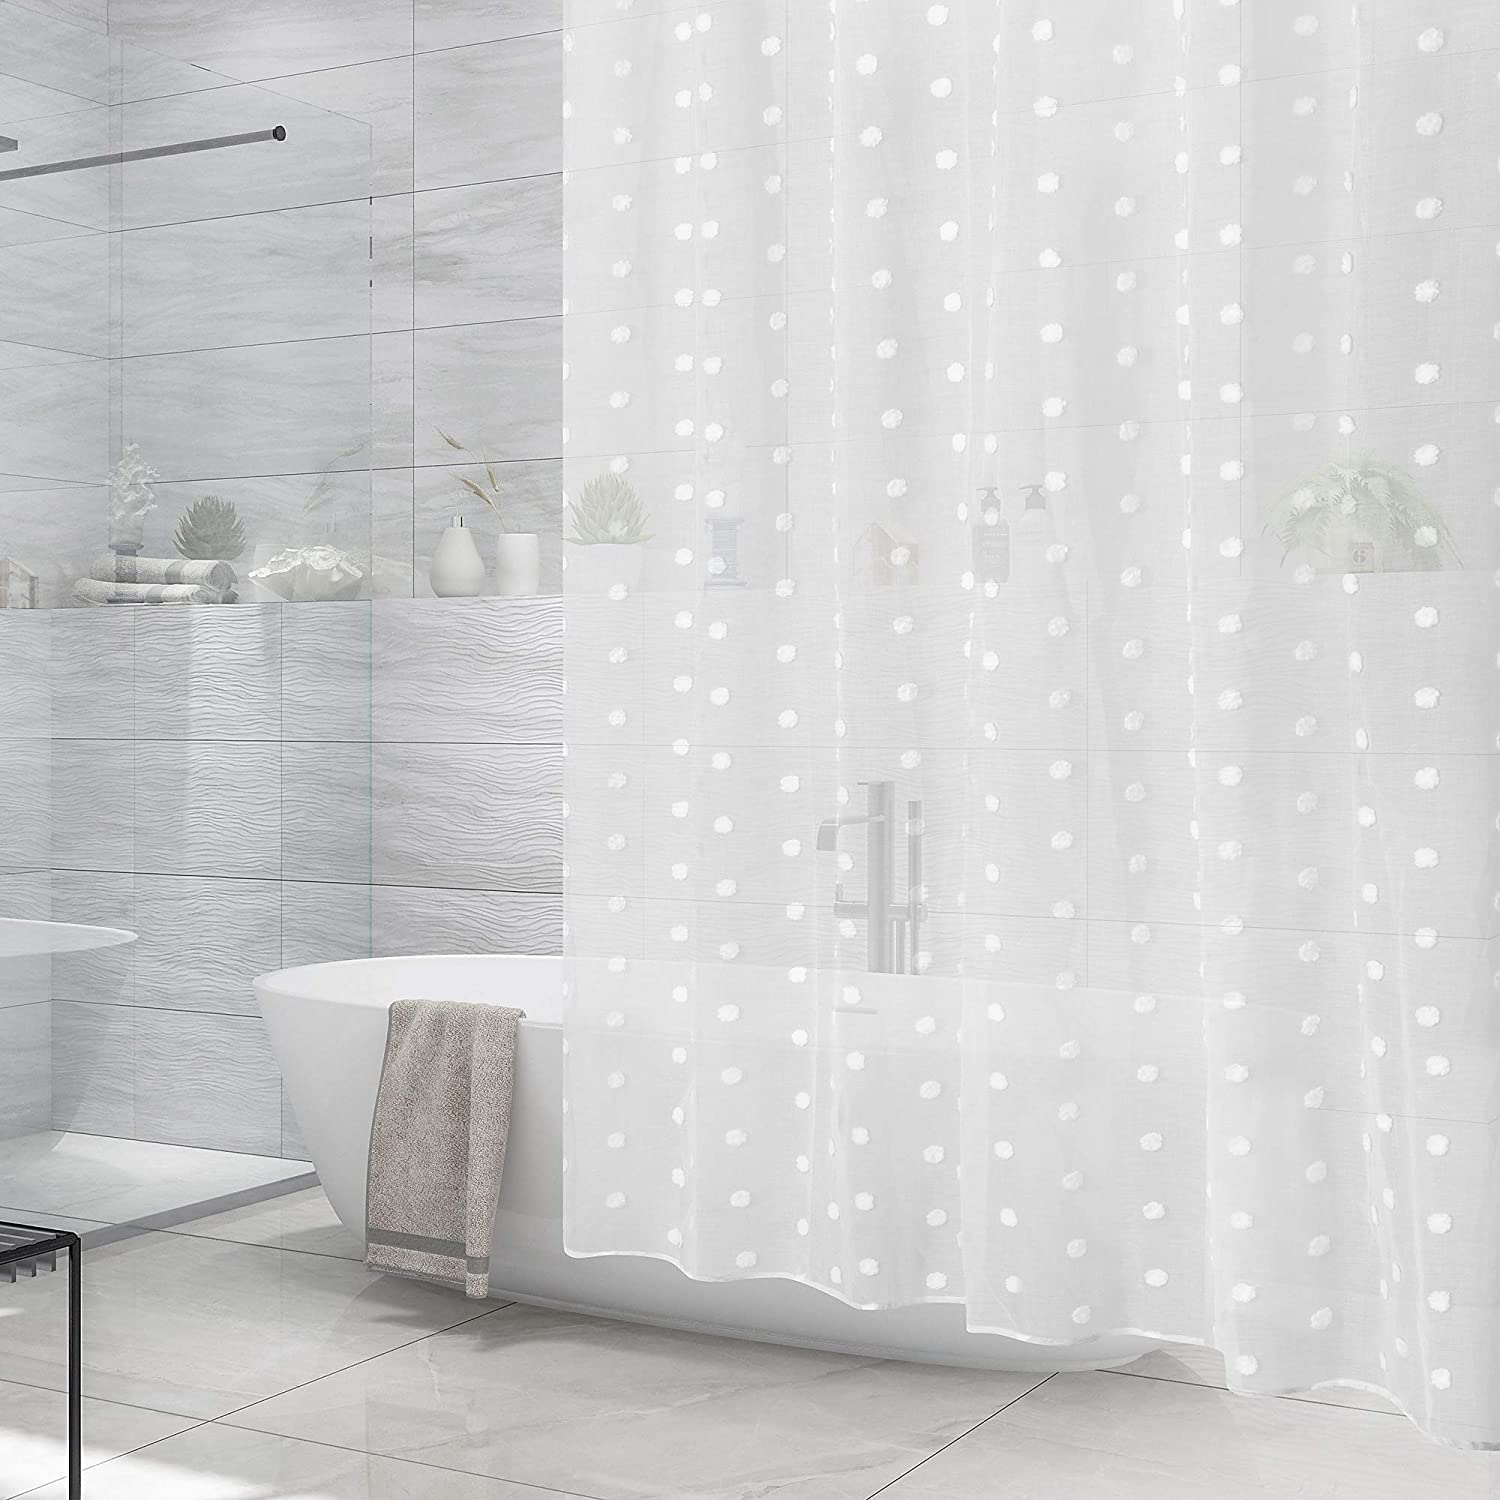 Barossa Design Sheer Shower Curtain Light-We Soft Now on Memphis Mall sale Poms Pom with